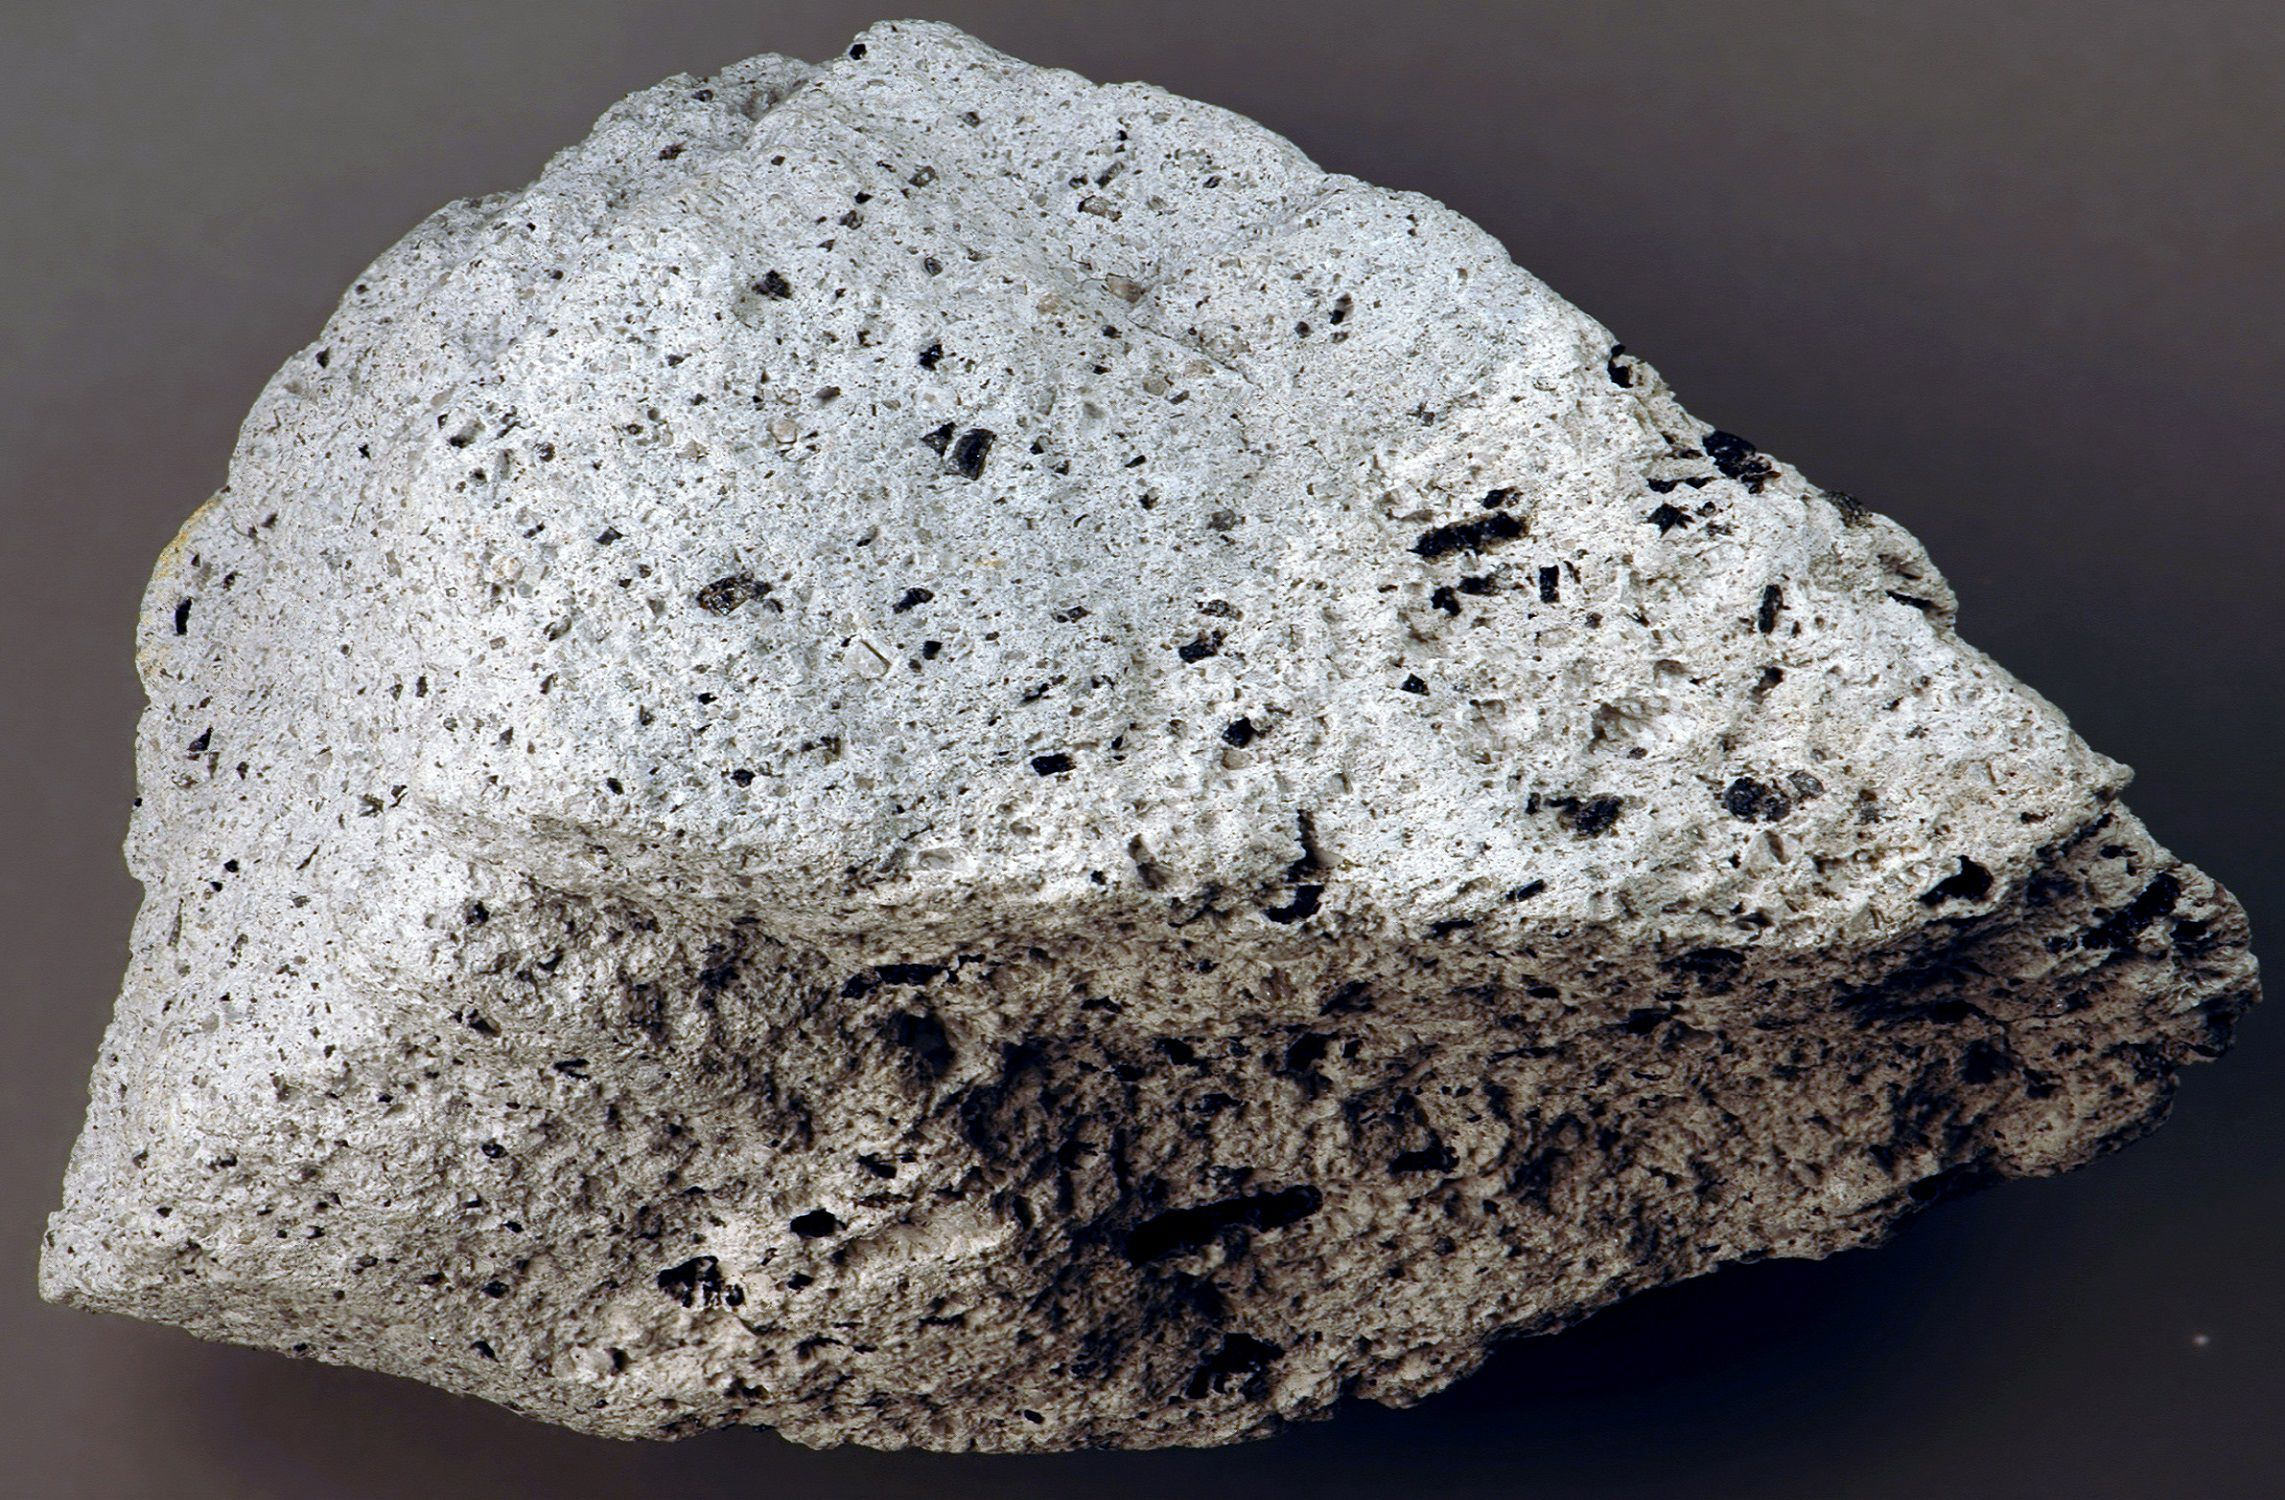 Large piece of andesite rock on a gray background.